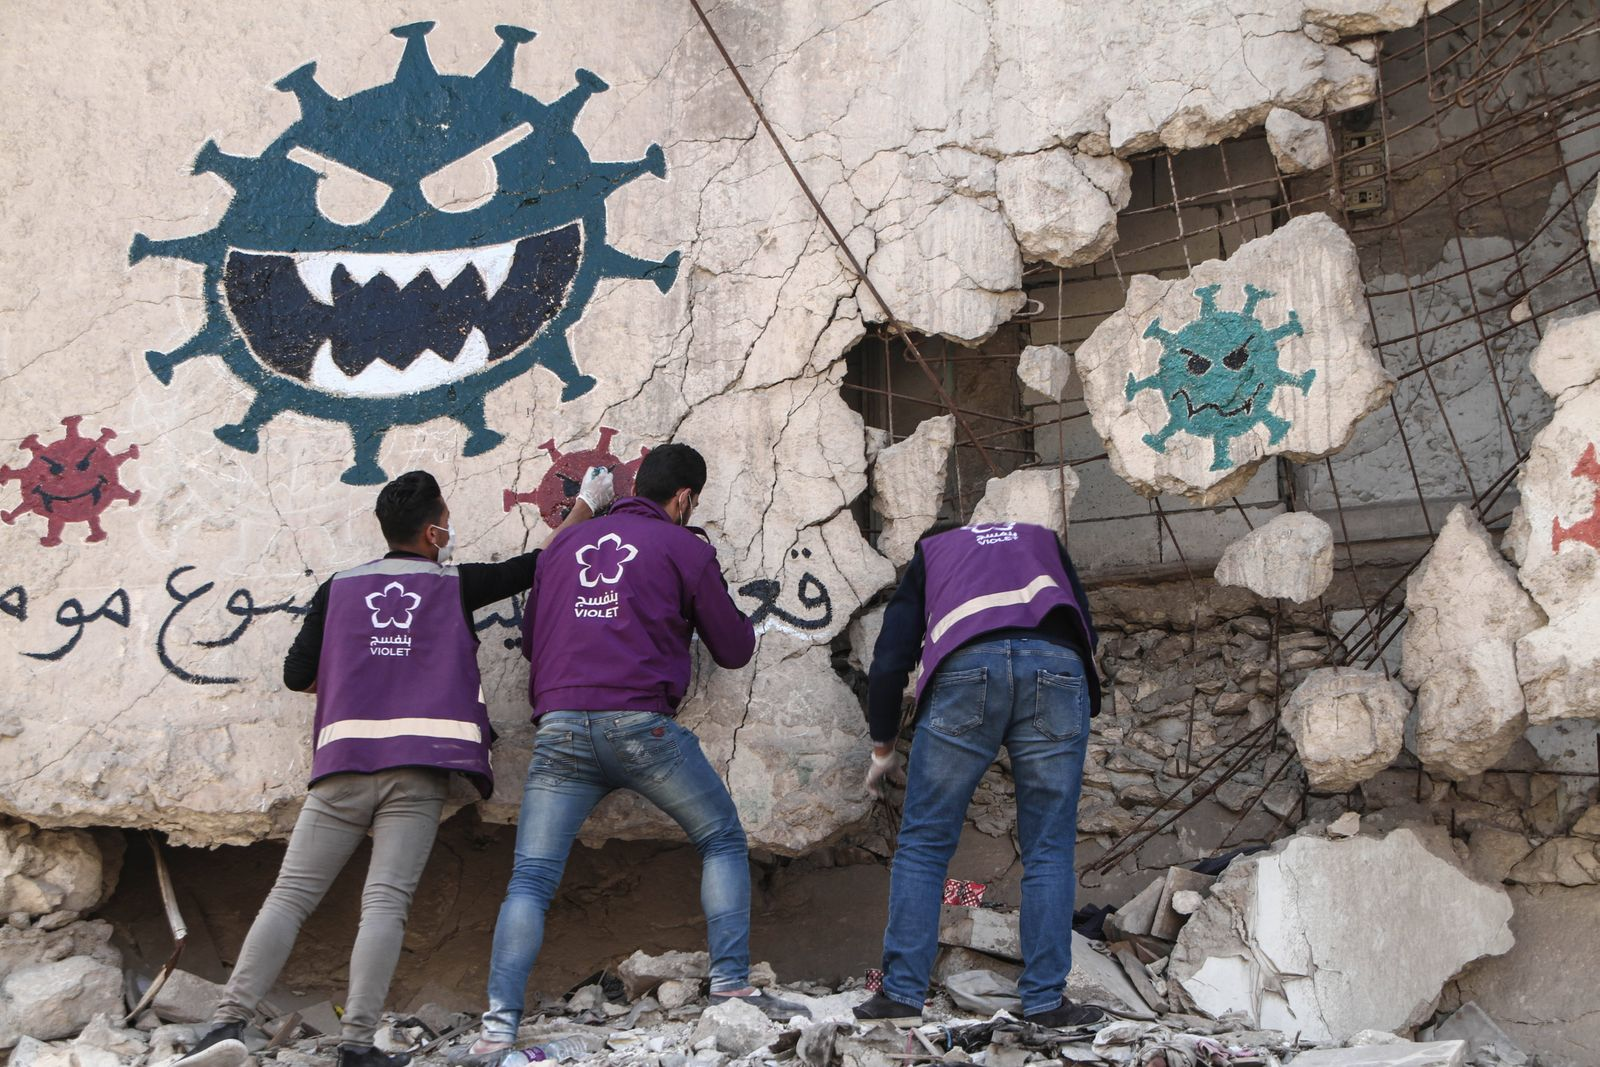 March 26, 2020: The photos show volunteers from Violet NGO drawing a painting on one of the walls destroyed by the bomb